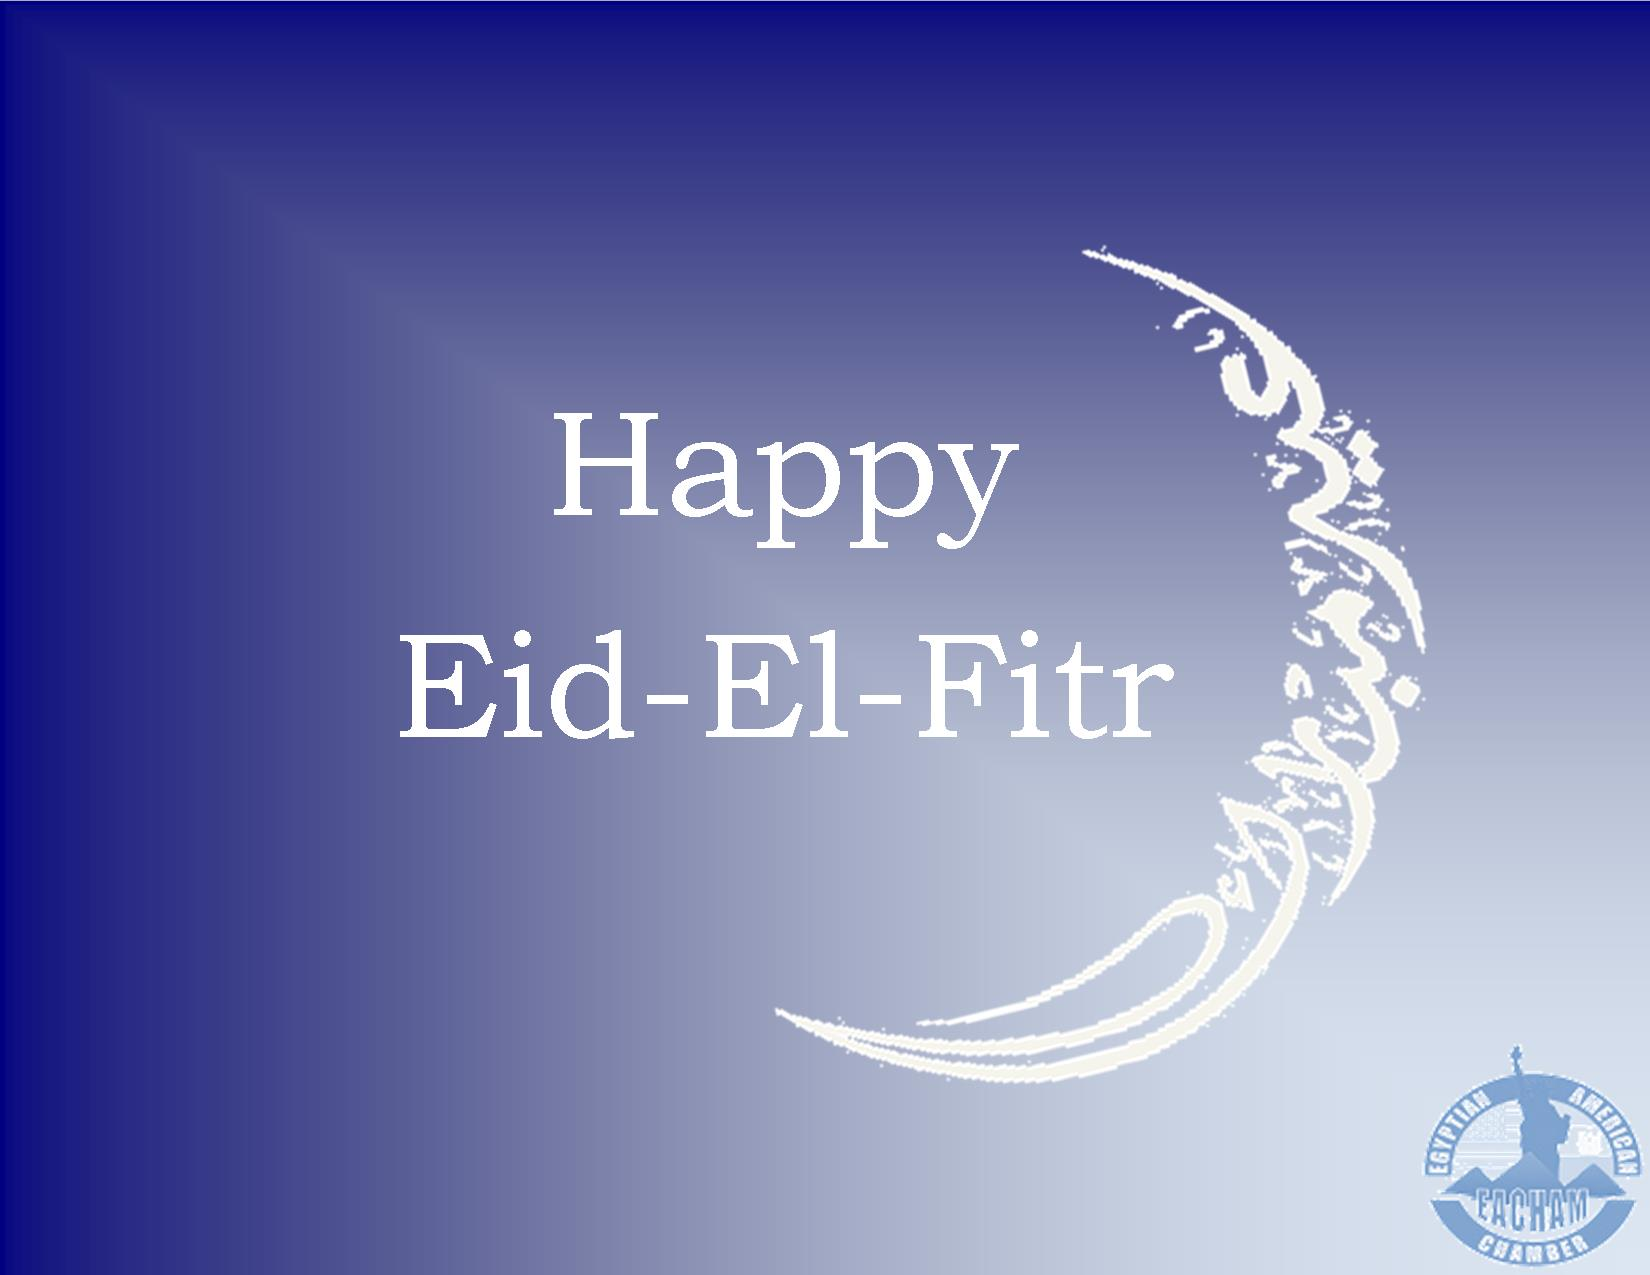 Happy Eid EL fitr 2017